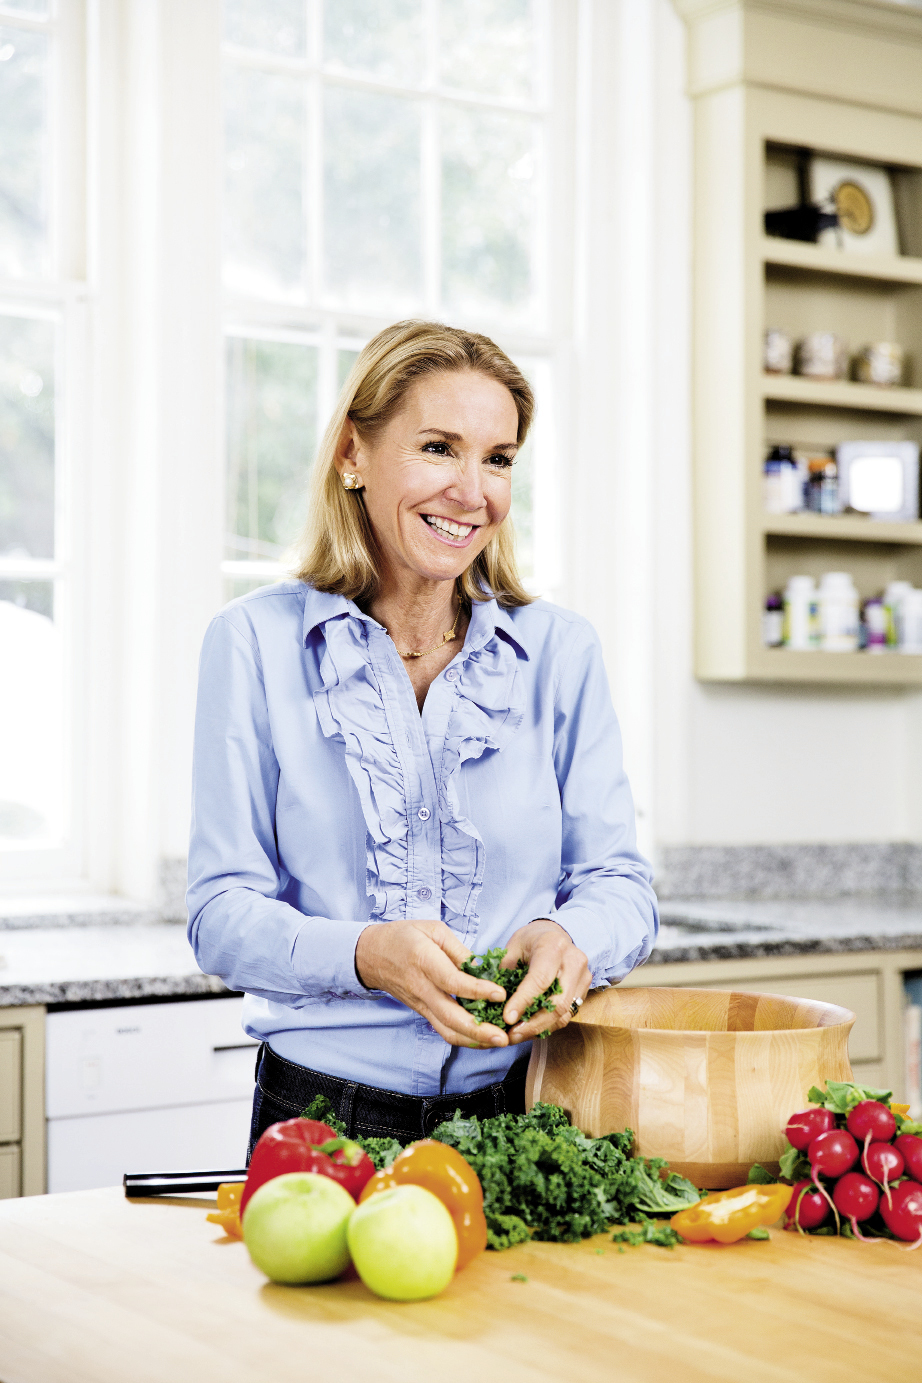 """I grew up with Southern food, and I love it,"" notes Dr. Ann. ""Sure, there are some culturally entrenched habits that aren't good for us, but lots of traditional Southern foods are excellent super foods. It just depends on how you prepare them."""